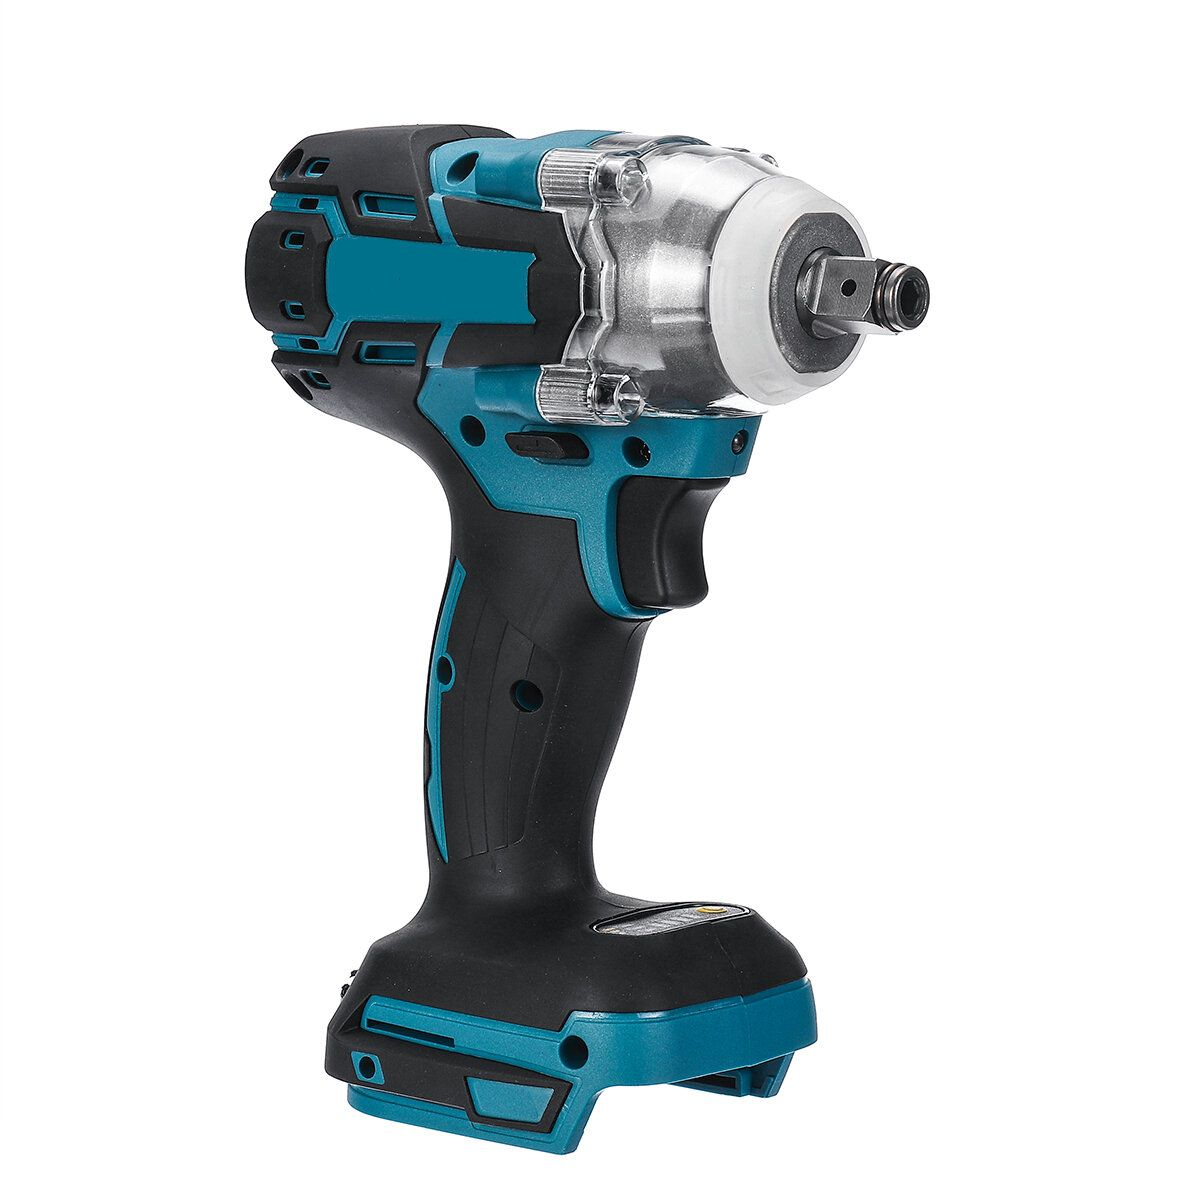 18V Cordless Brushless Impact Wrench Stepless Speed Change Switch Adapted To 18V Makita battery